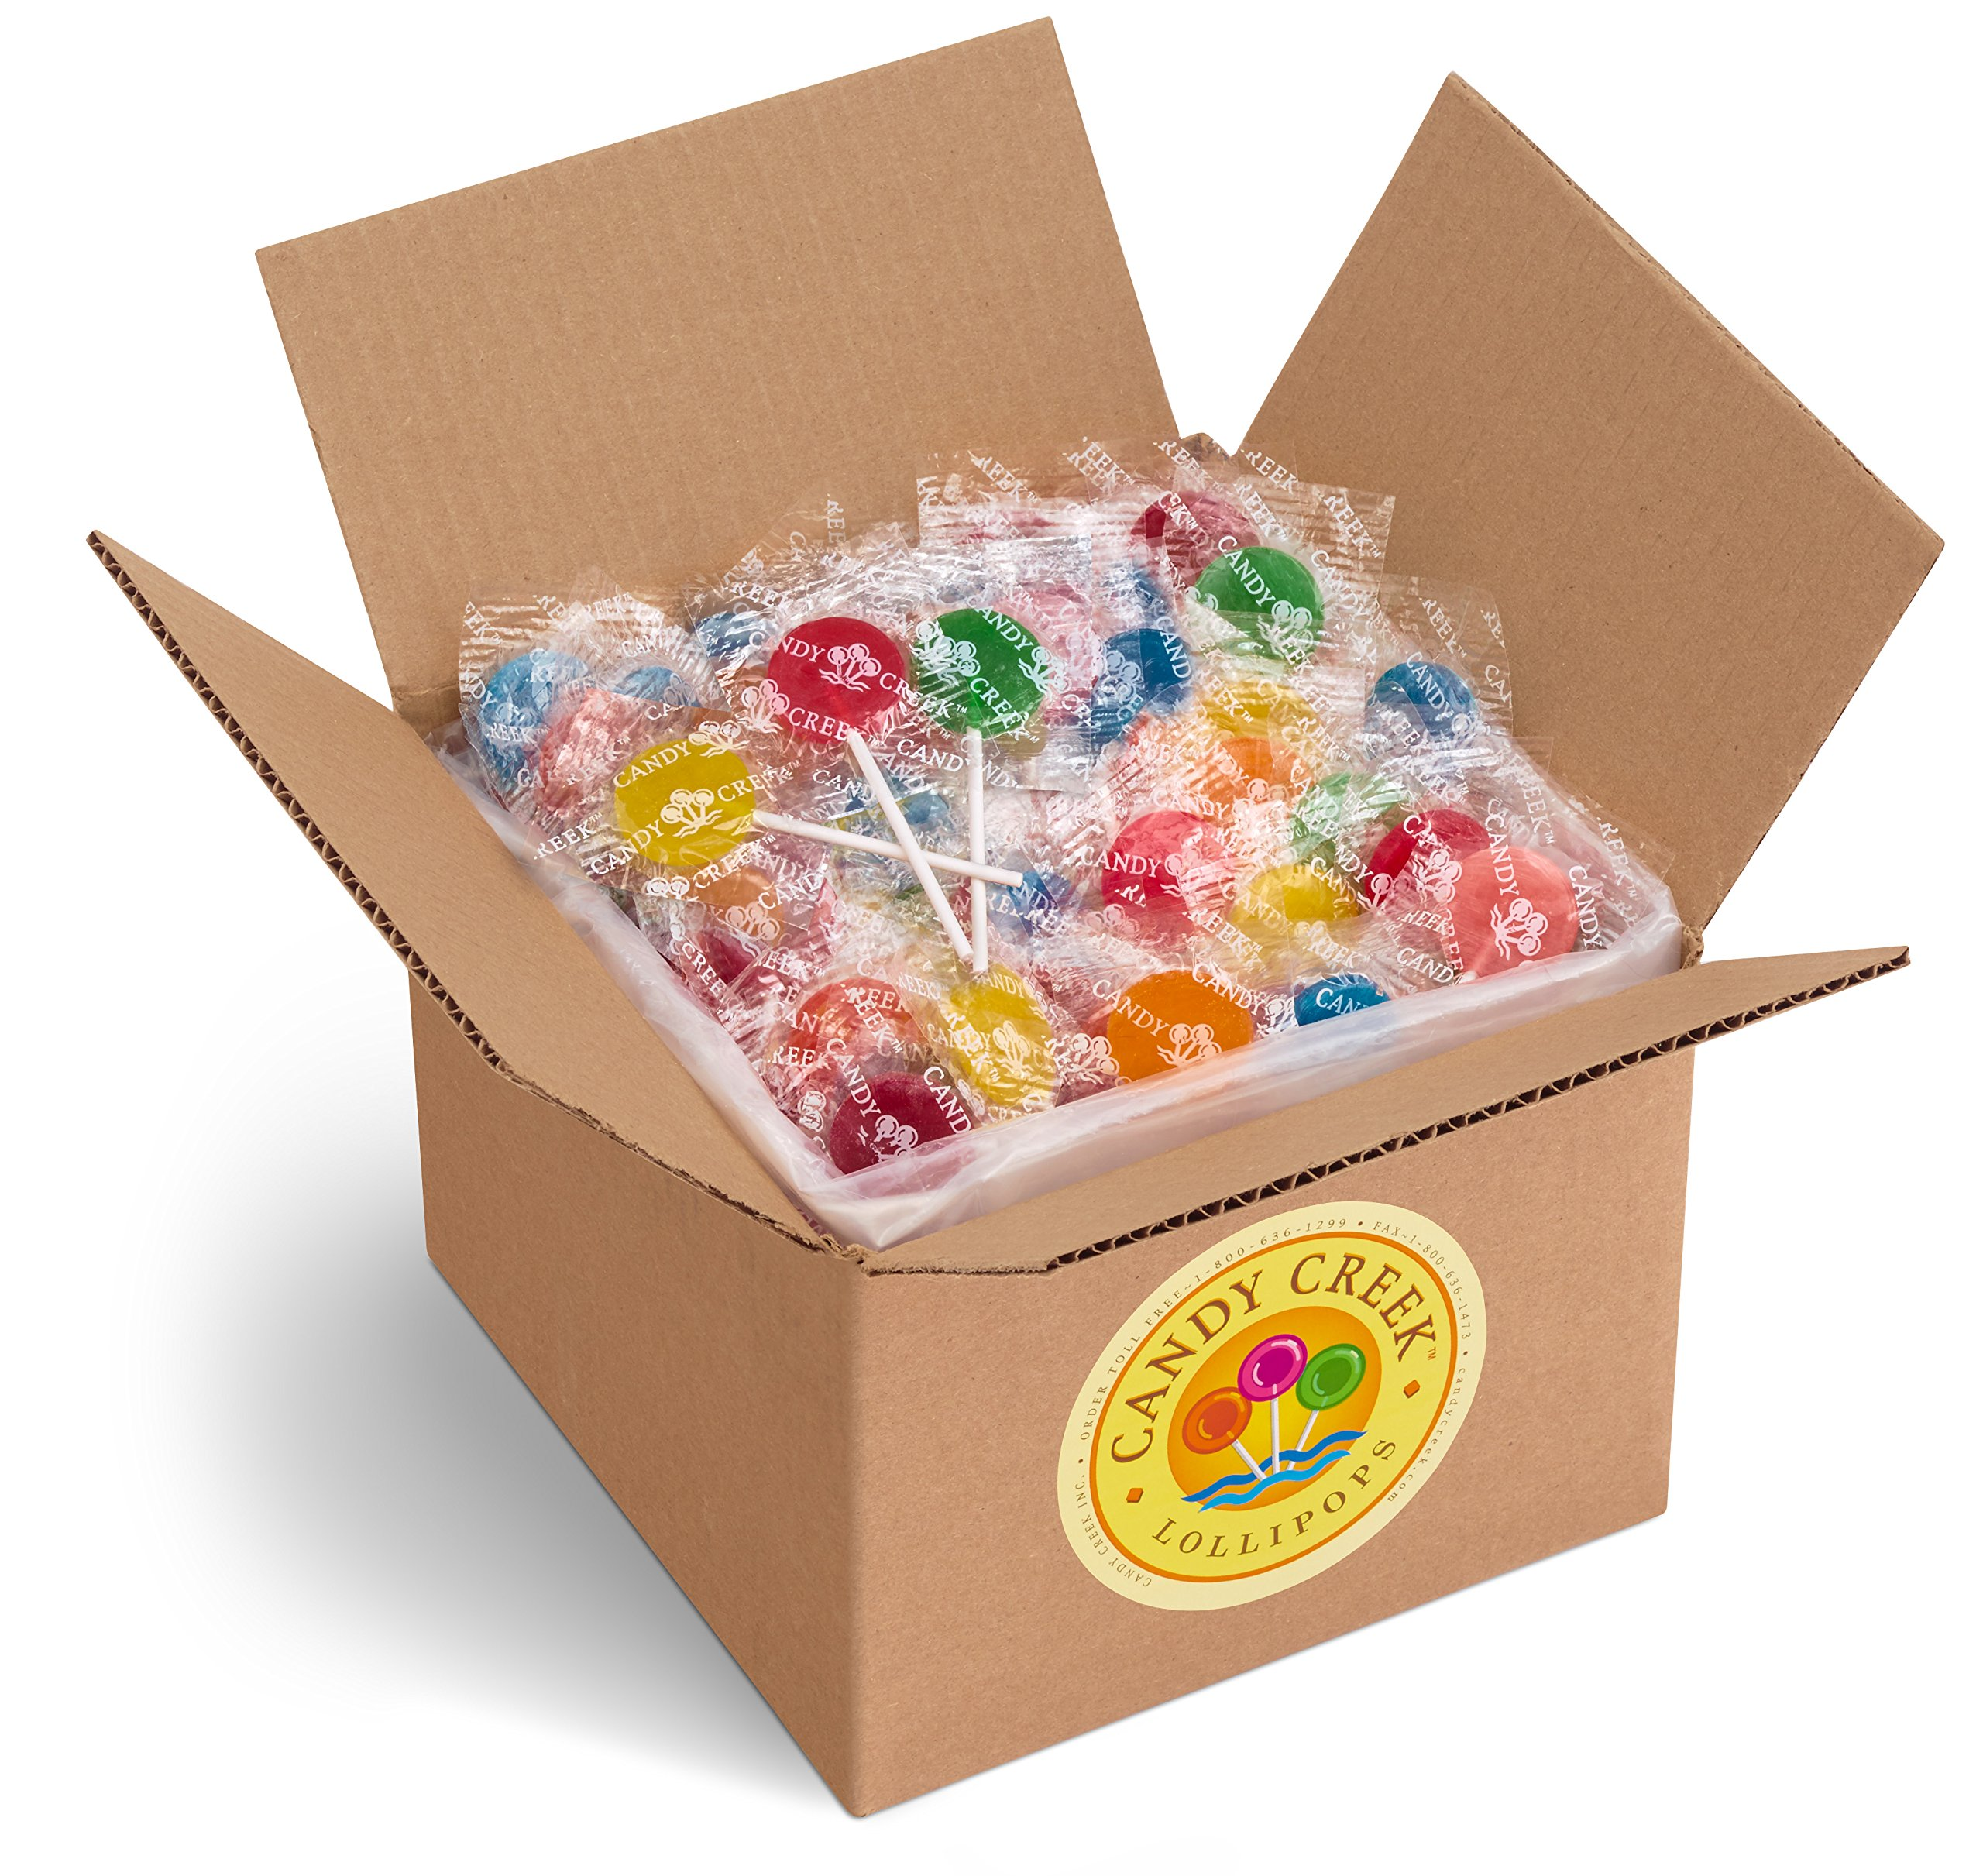 Fruit Lollipops by Candy Creek, Bulk 5 lb. Carton, Assorted Flavors